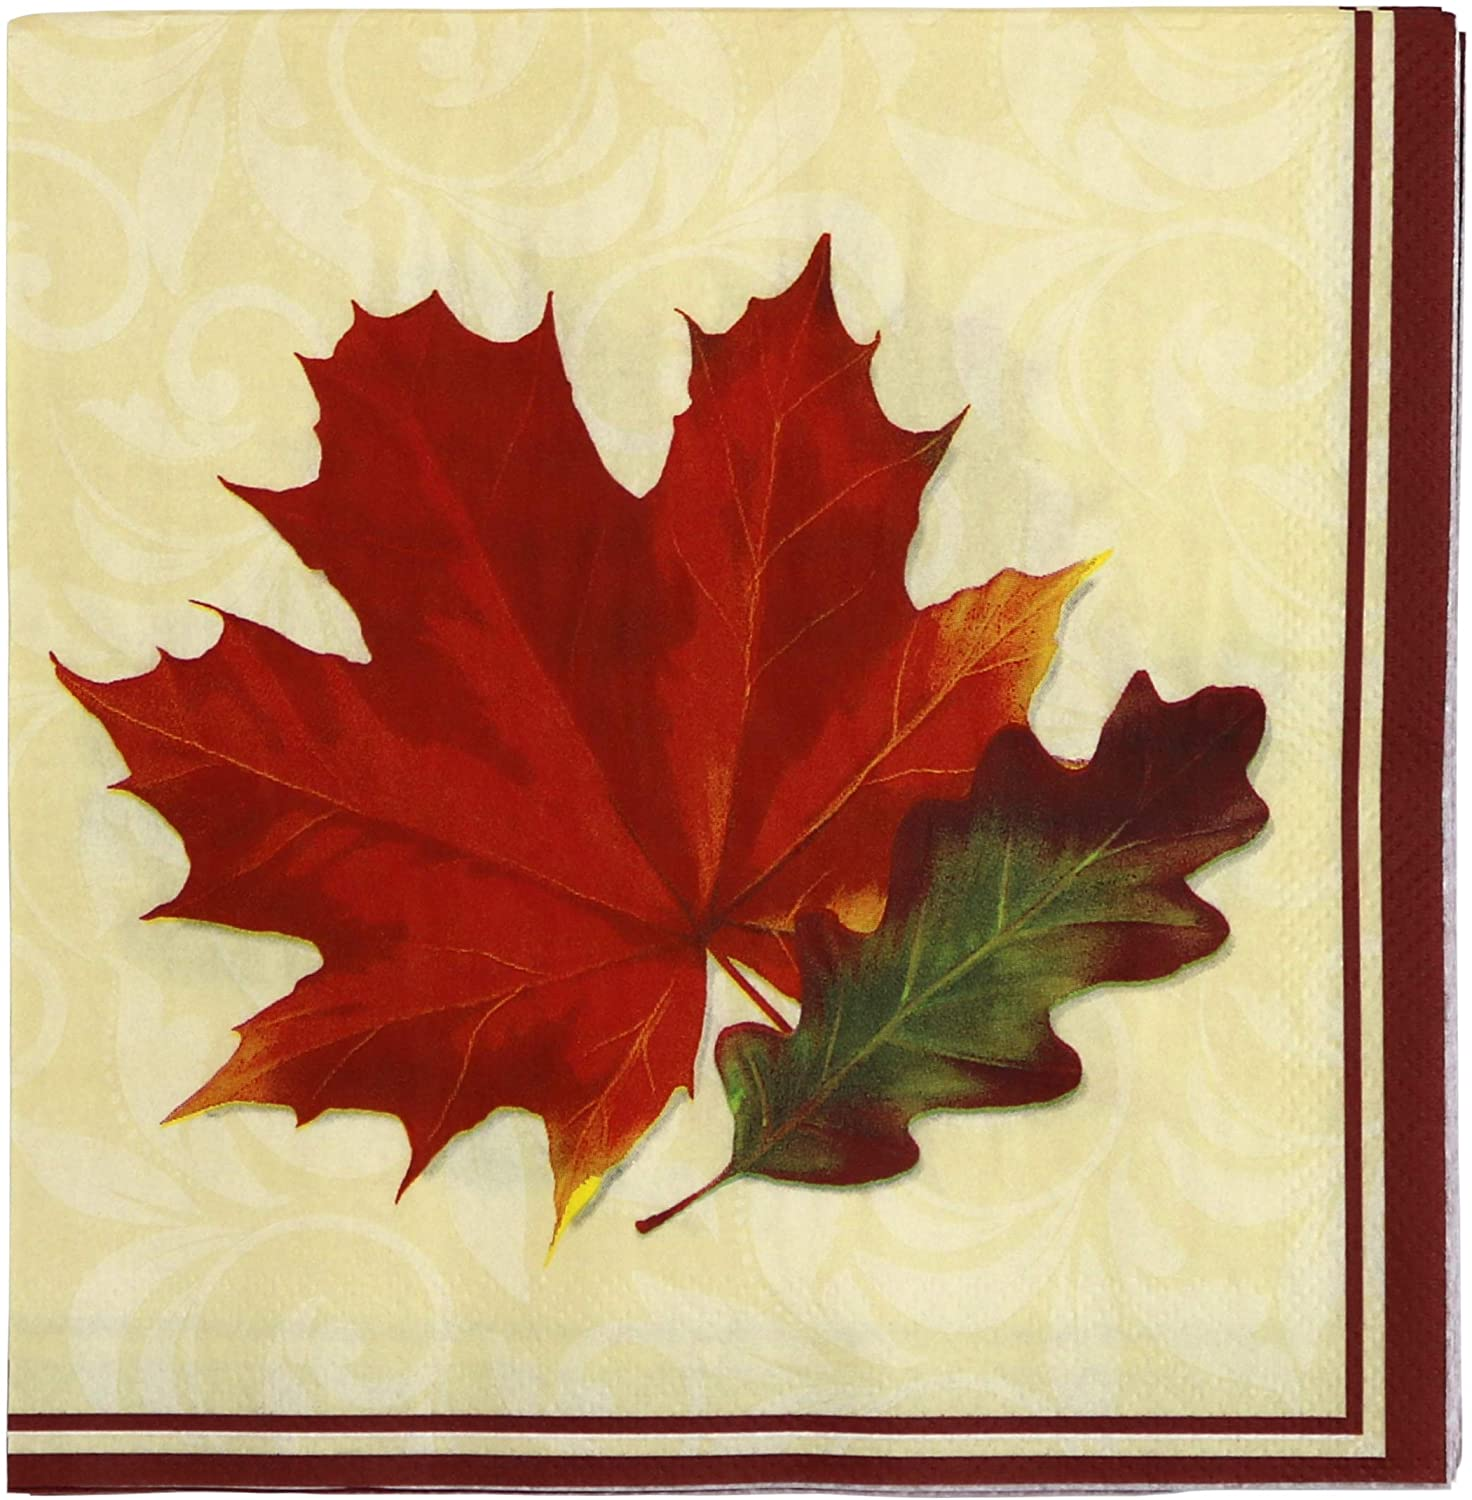 Paper Disposable Party Napkins, Dinner Size, Fall Leaves, 64-Count